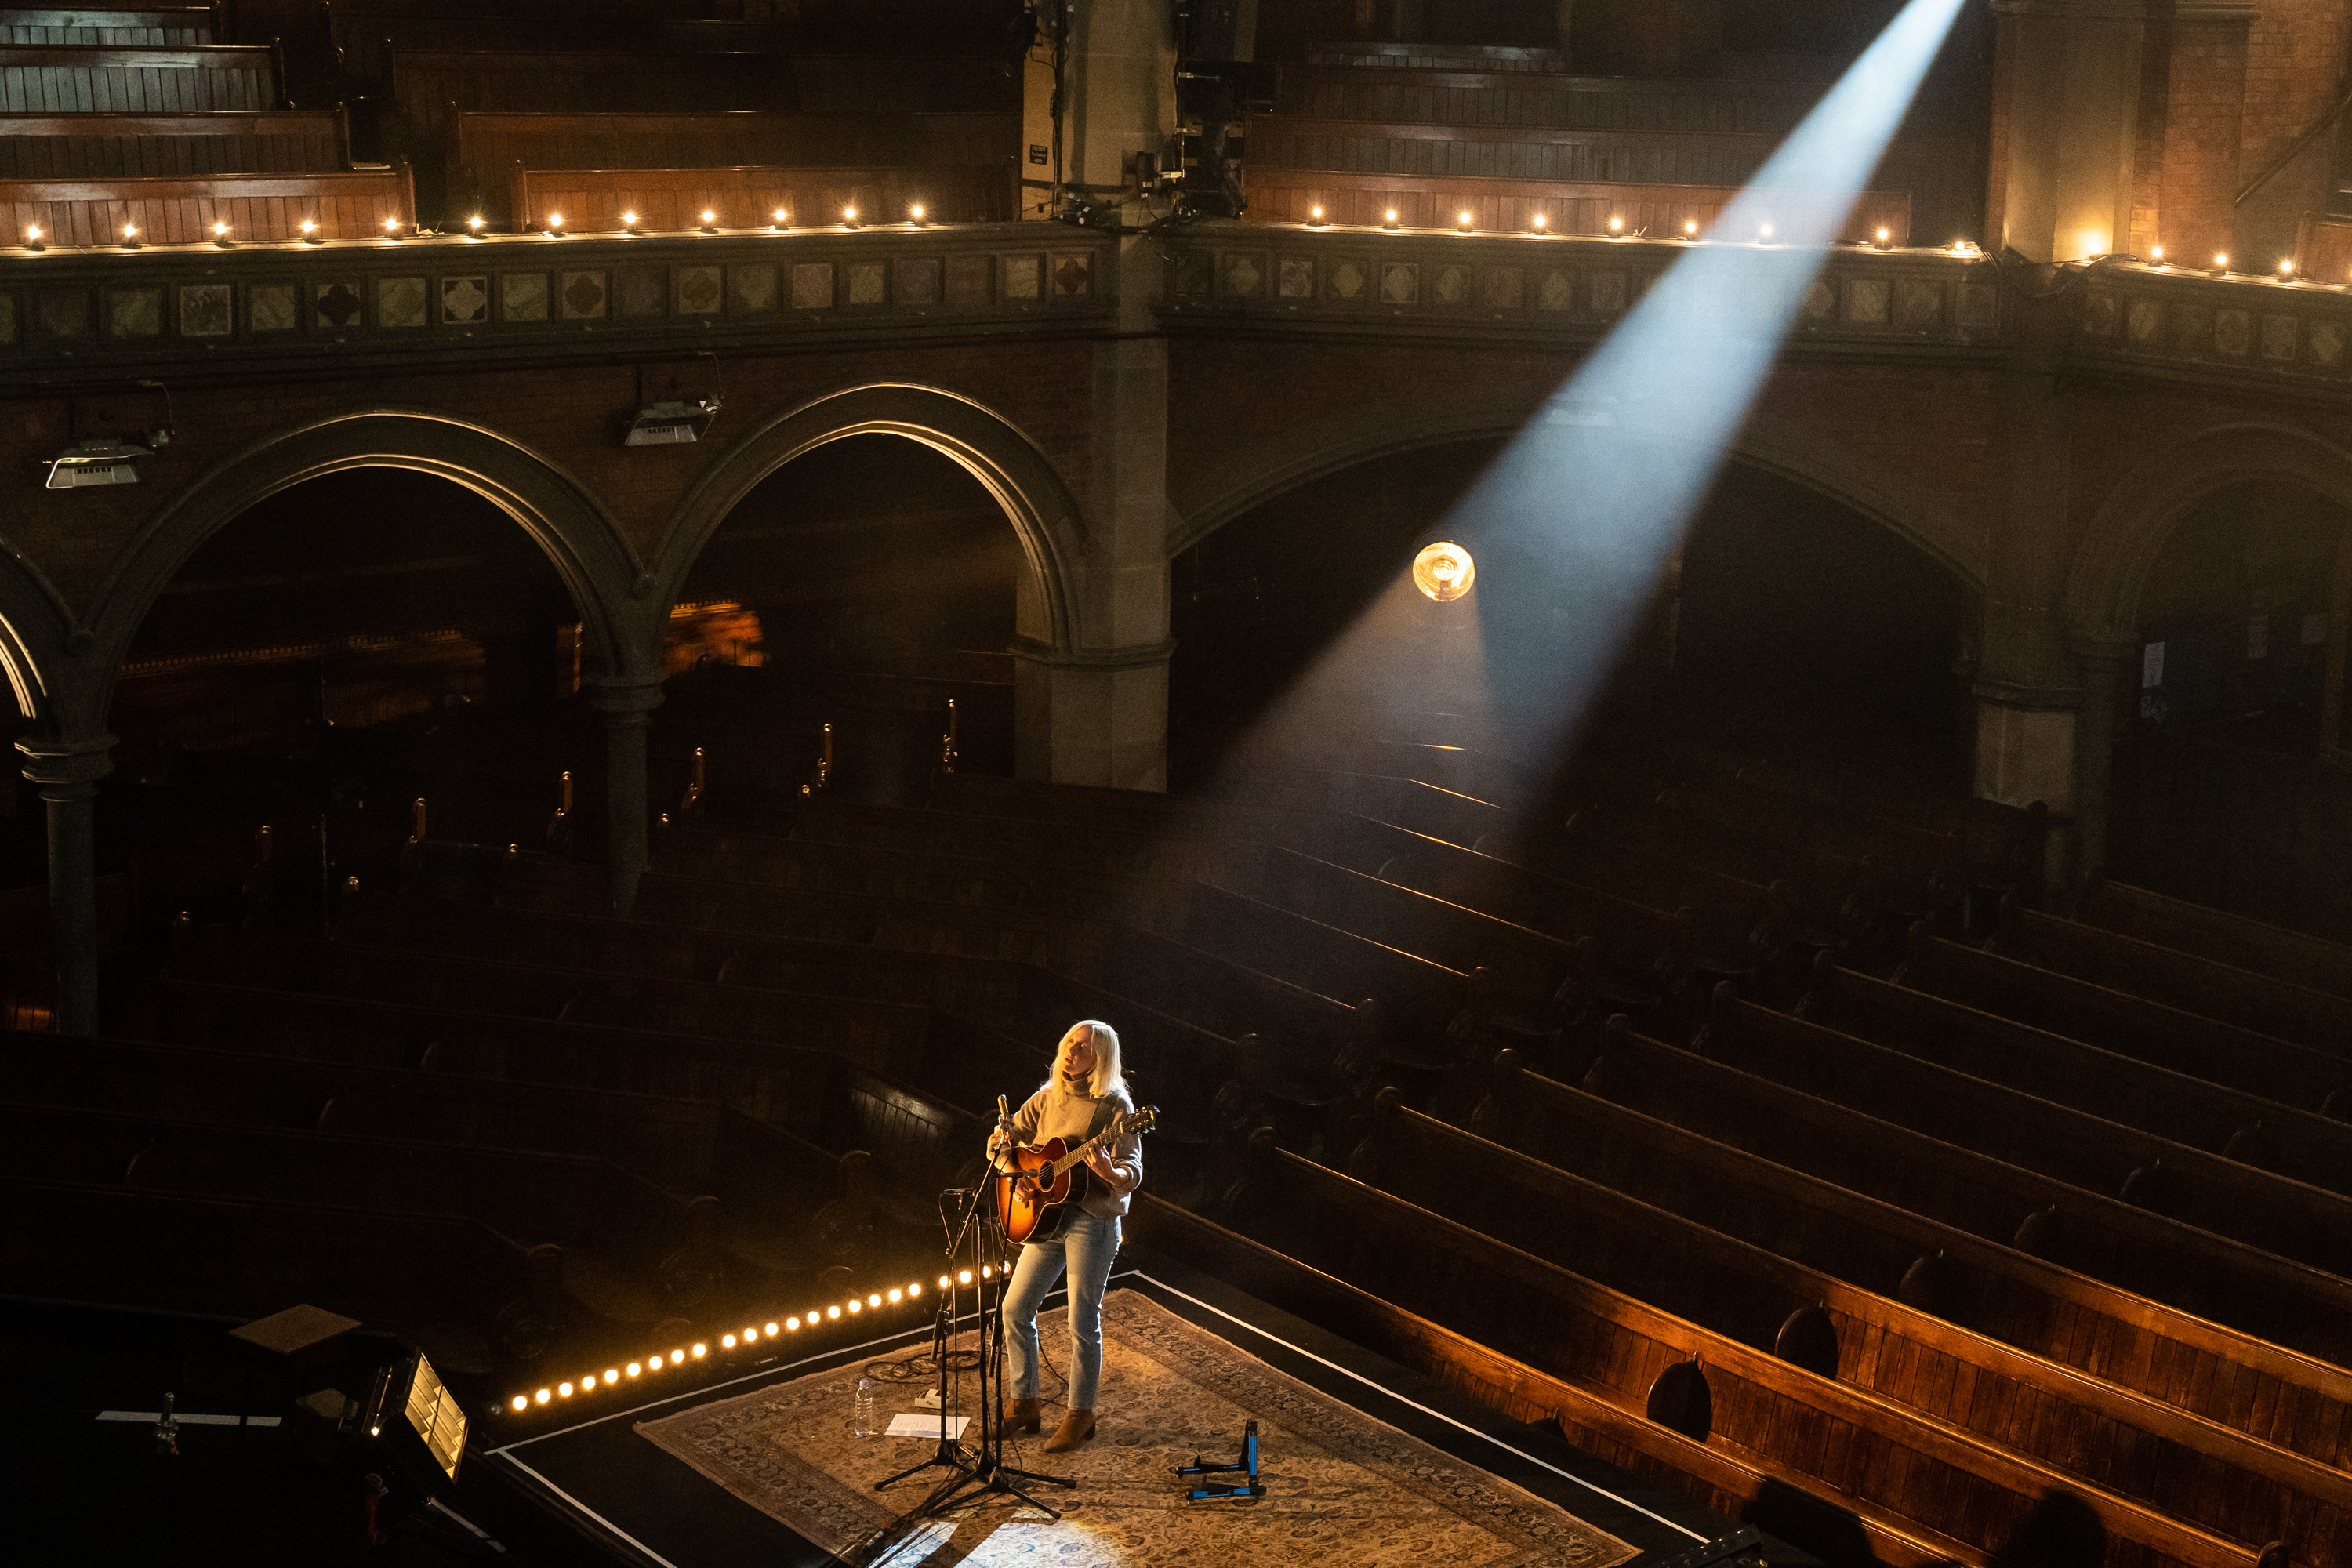 """LONDON, ENGLAND - JUNE 06: Laura Marling performs her new album """"Song For Our Daughter"""" in an empty Union Chapel on June 06, 2020 in London, England.  The gig was streamed live to ticket buyers across Europe during the COVID-19 pandemic. (Photo by Lorne Thomson/Redferns)"""